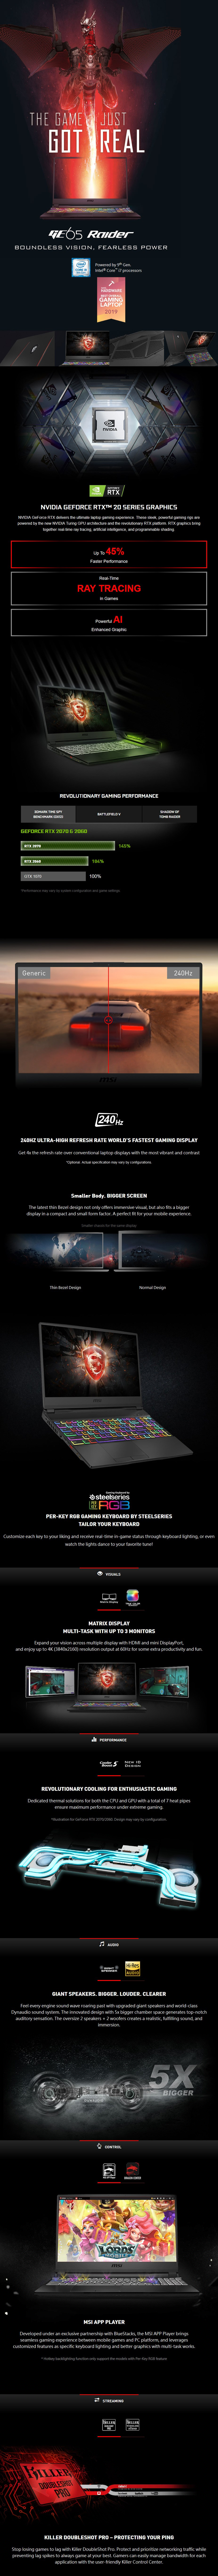 """MSI GE65 Raider 9SF 15.6"""" 240Hz Gaming Laptop i7-9750H 16GB 1TB RTX2070 W10H - Overview 1"""